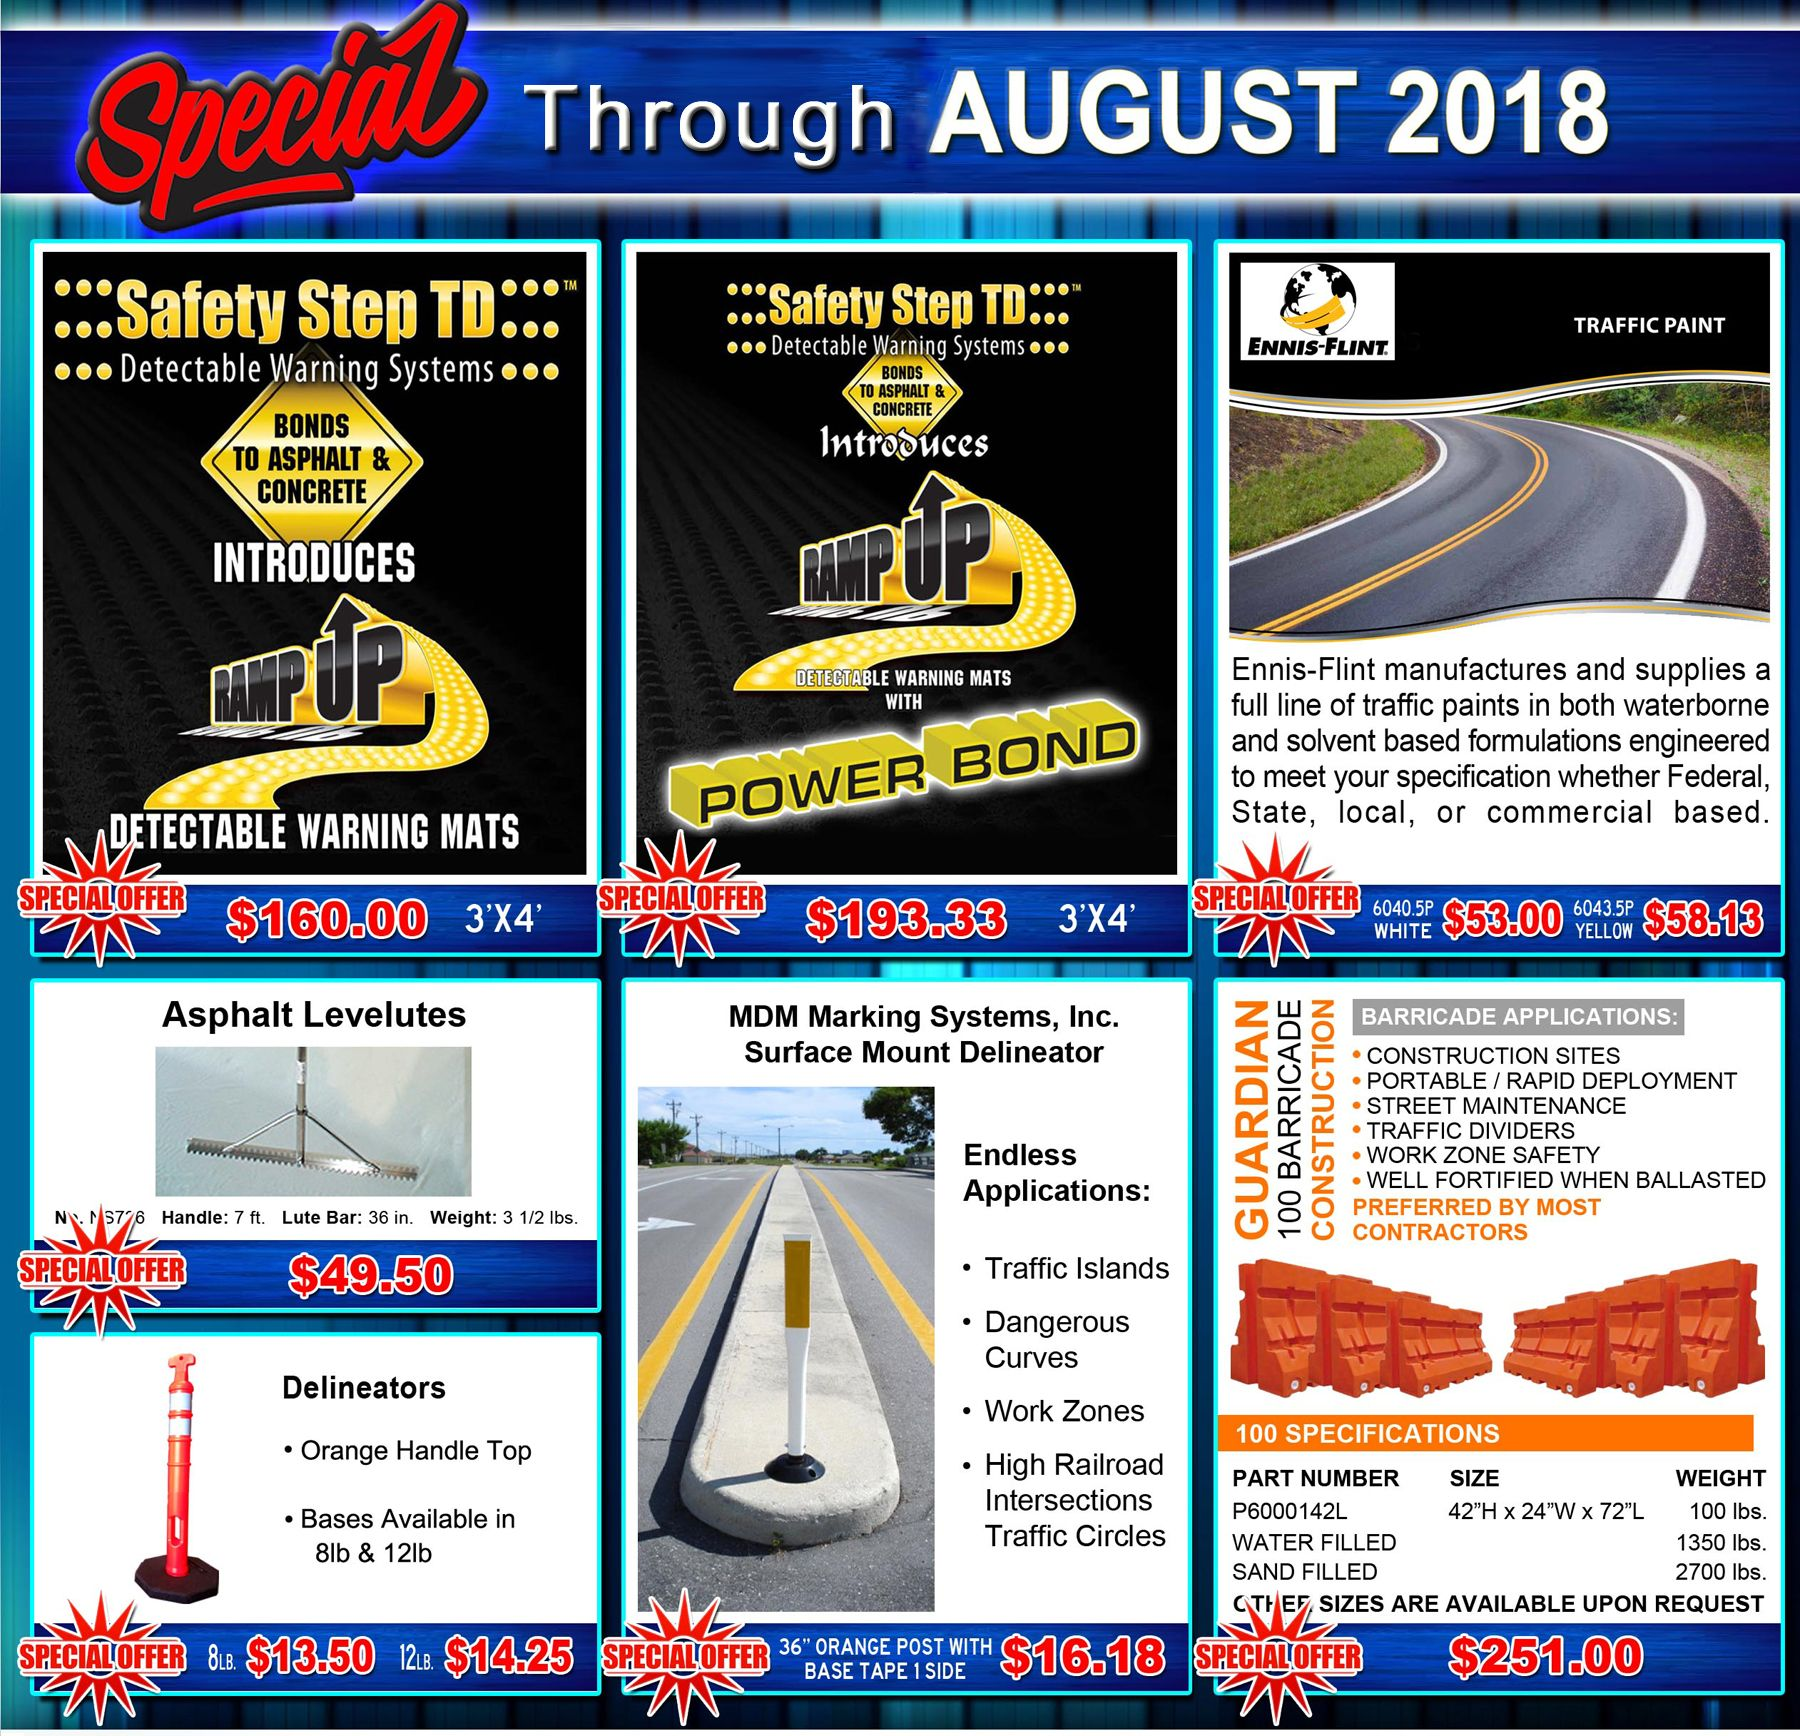 Don T Miss Our Specials Through August Safetystep Rampup